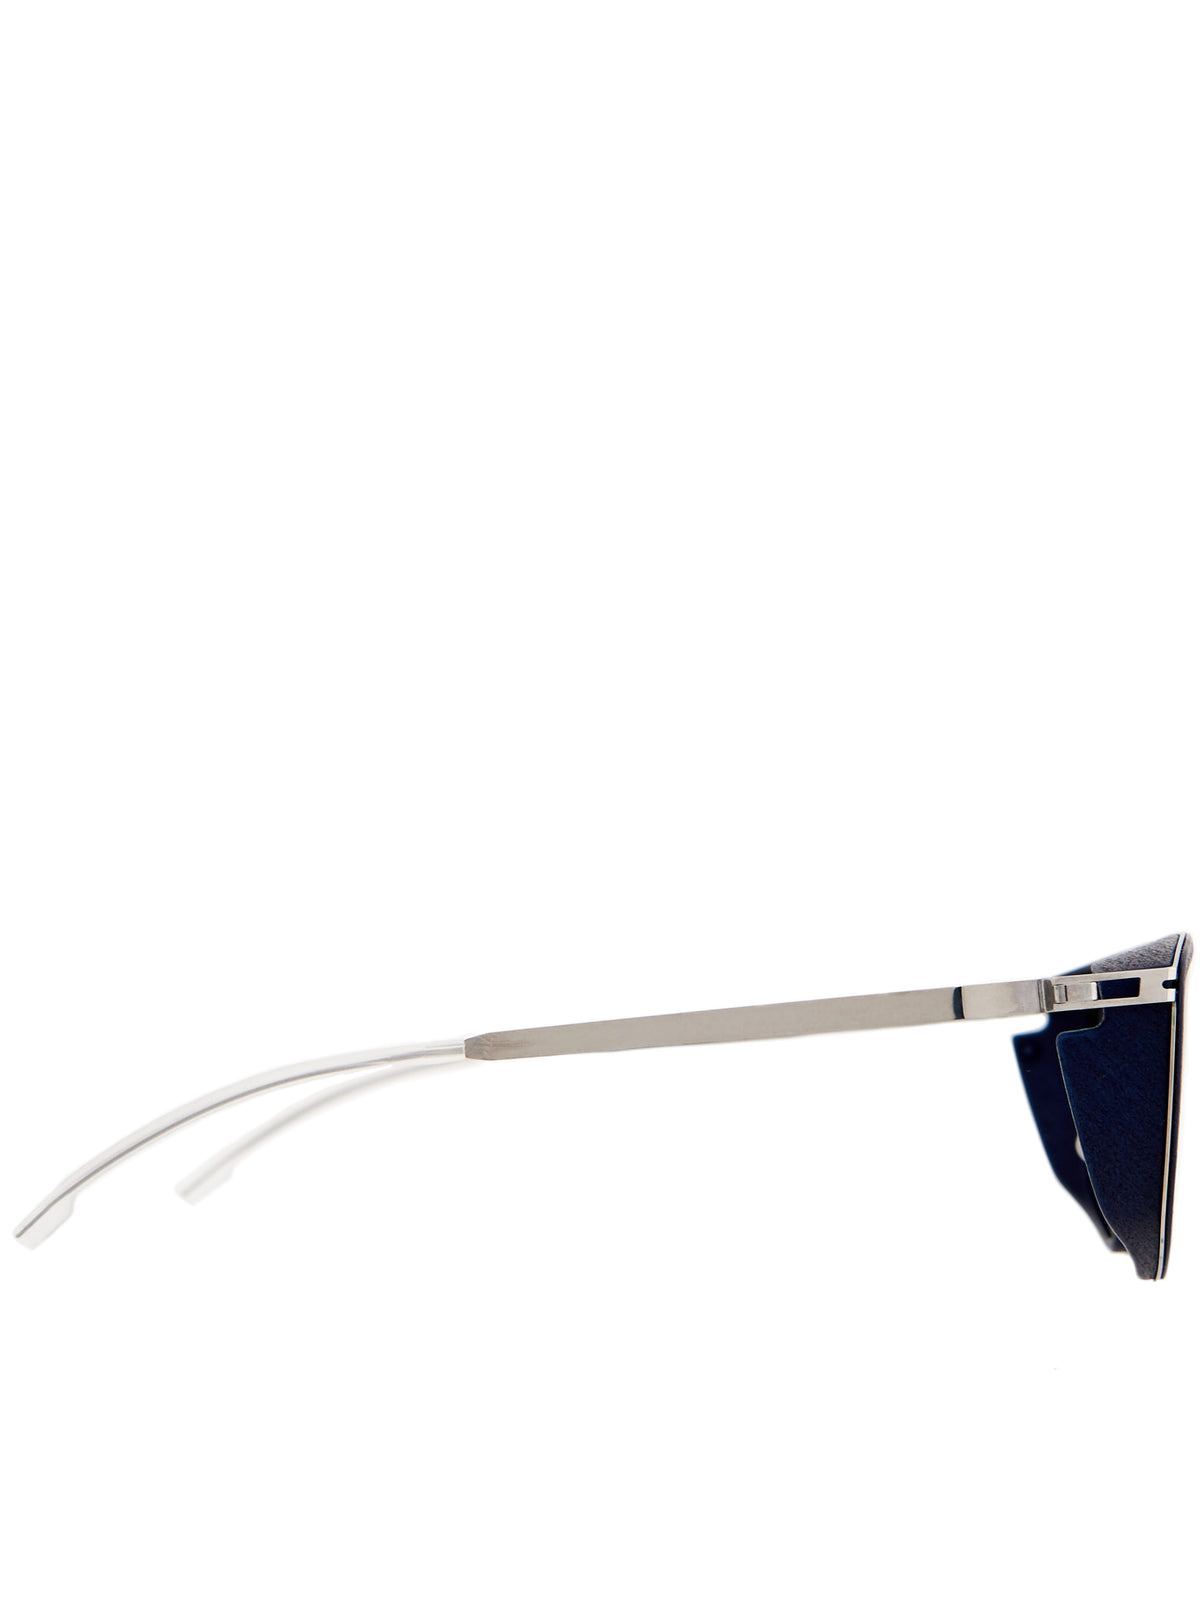 'Tribe' Sunglasses (TRIBE-NAVYBLUE-SHINYSILVER)